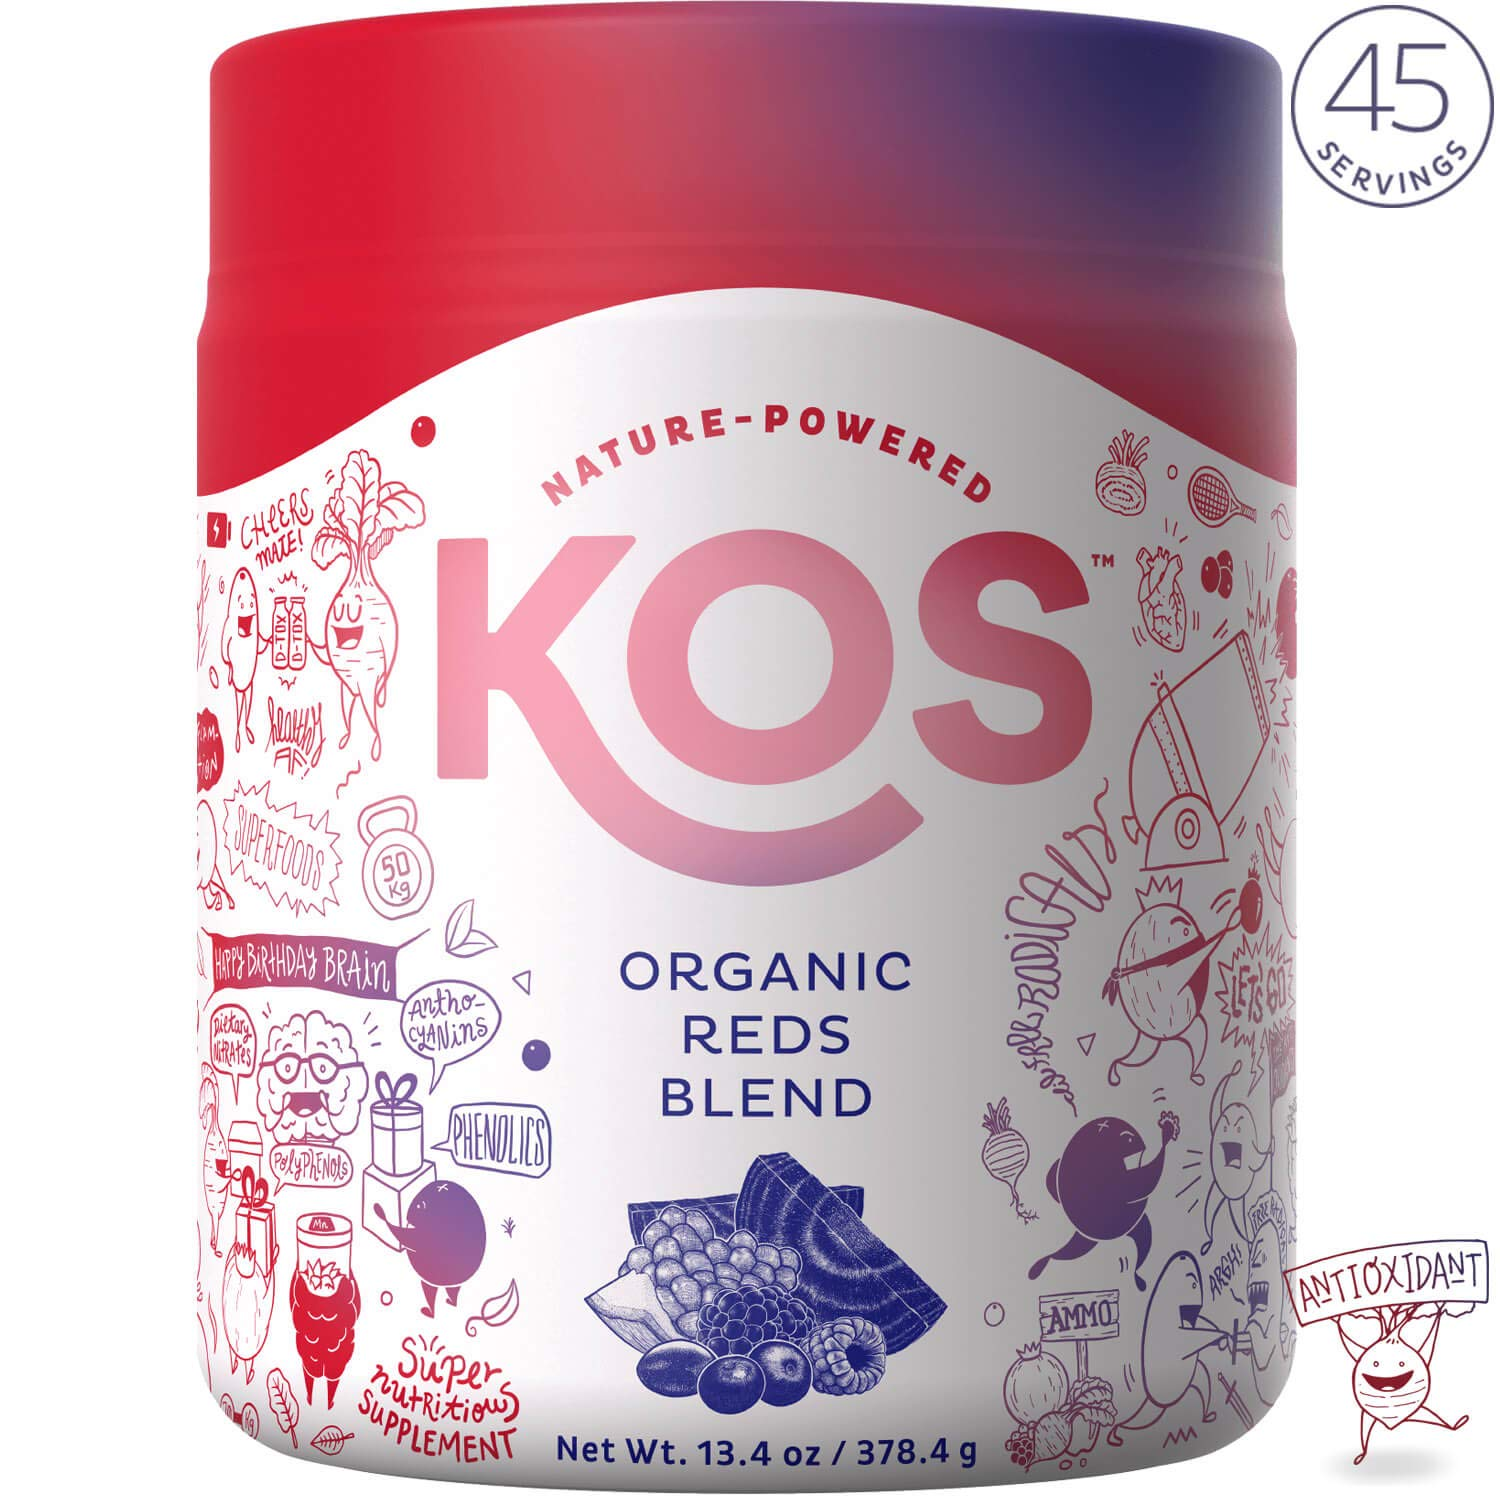 KOS Organic Reds Blend Supplement - Superfood Antioxidant Powder - Natural Plant-Based, Delicious Vegan Juice Drink - Digestive Enzymes, Beet Root, Goji Berries - Daily Energy Booster - 45 Servings by KOS